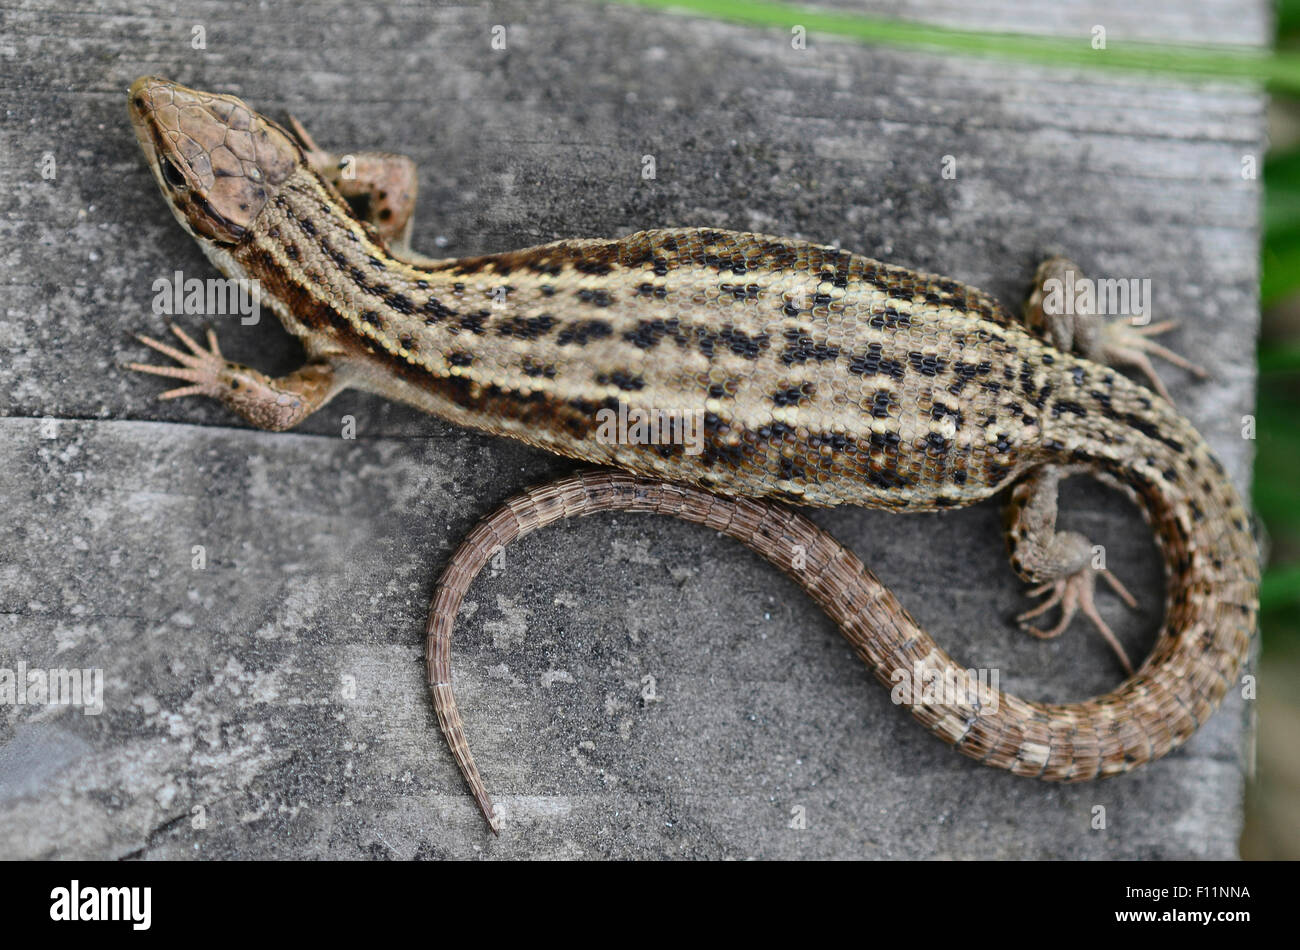 Lézard commun sur l'embarquement en UK Photo Stock